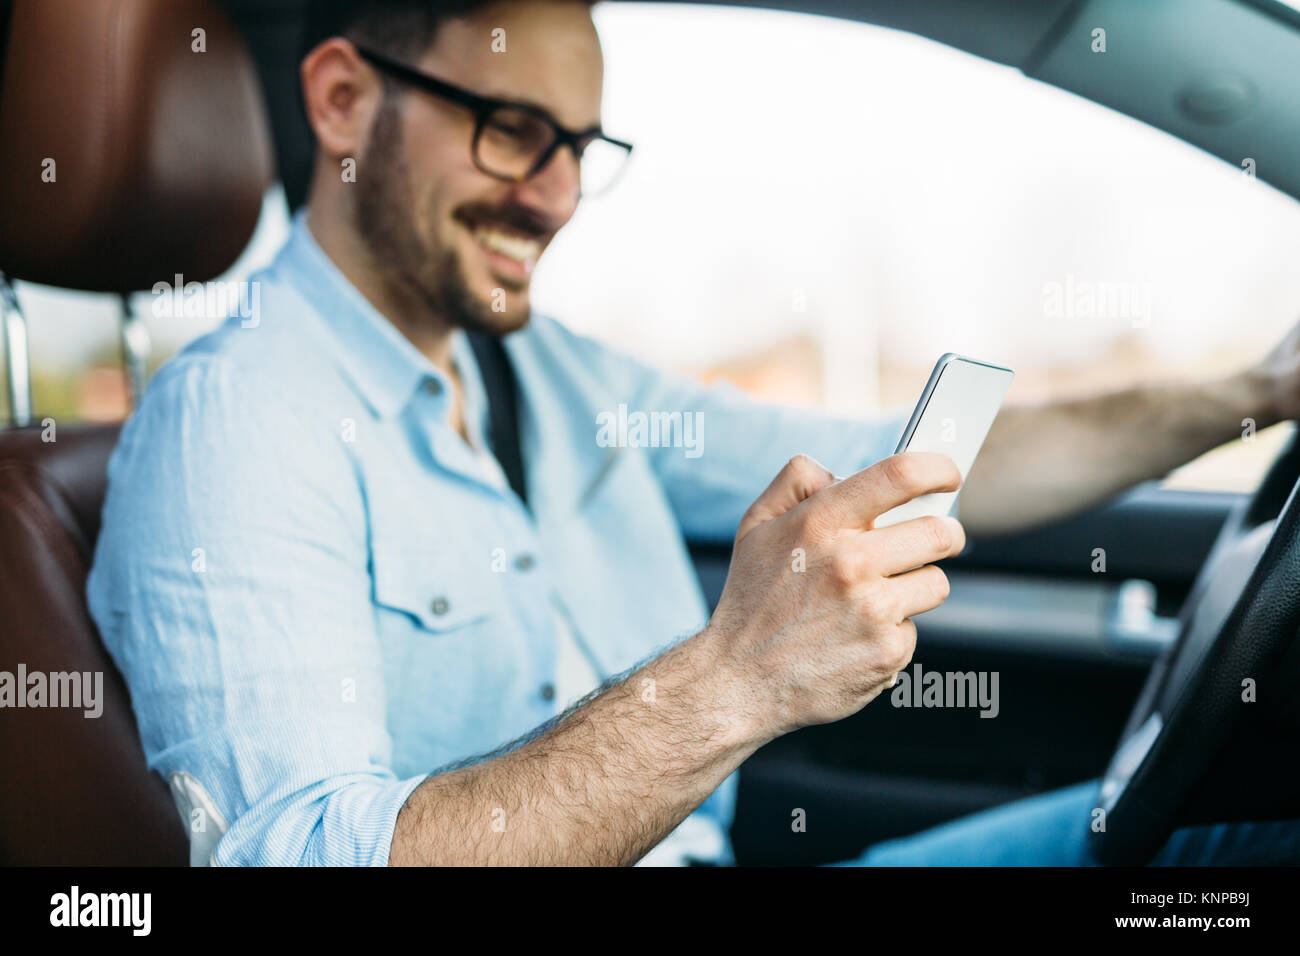 man using phone while driving the car - Stock Image